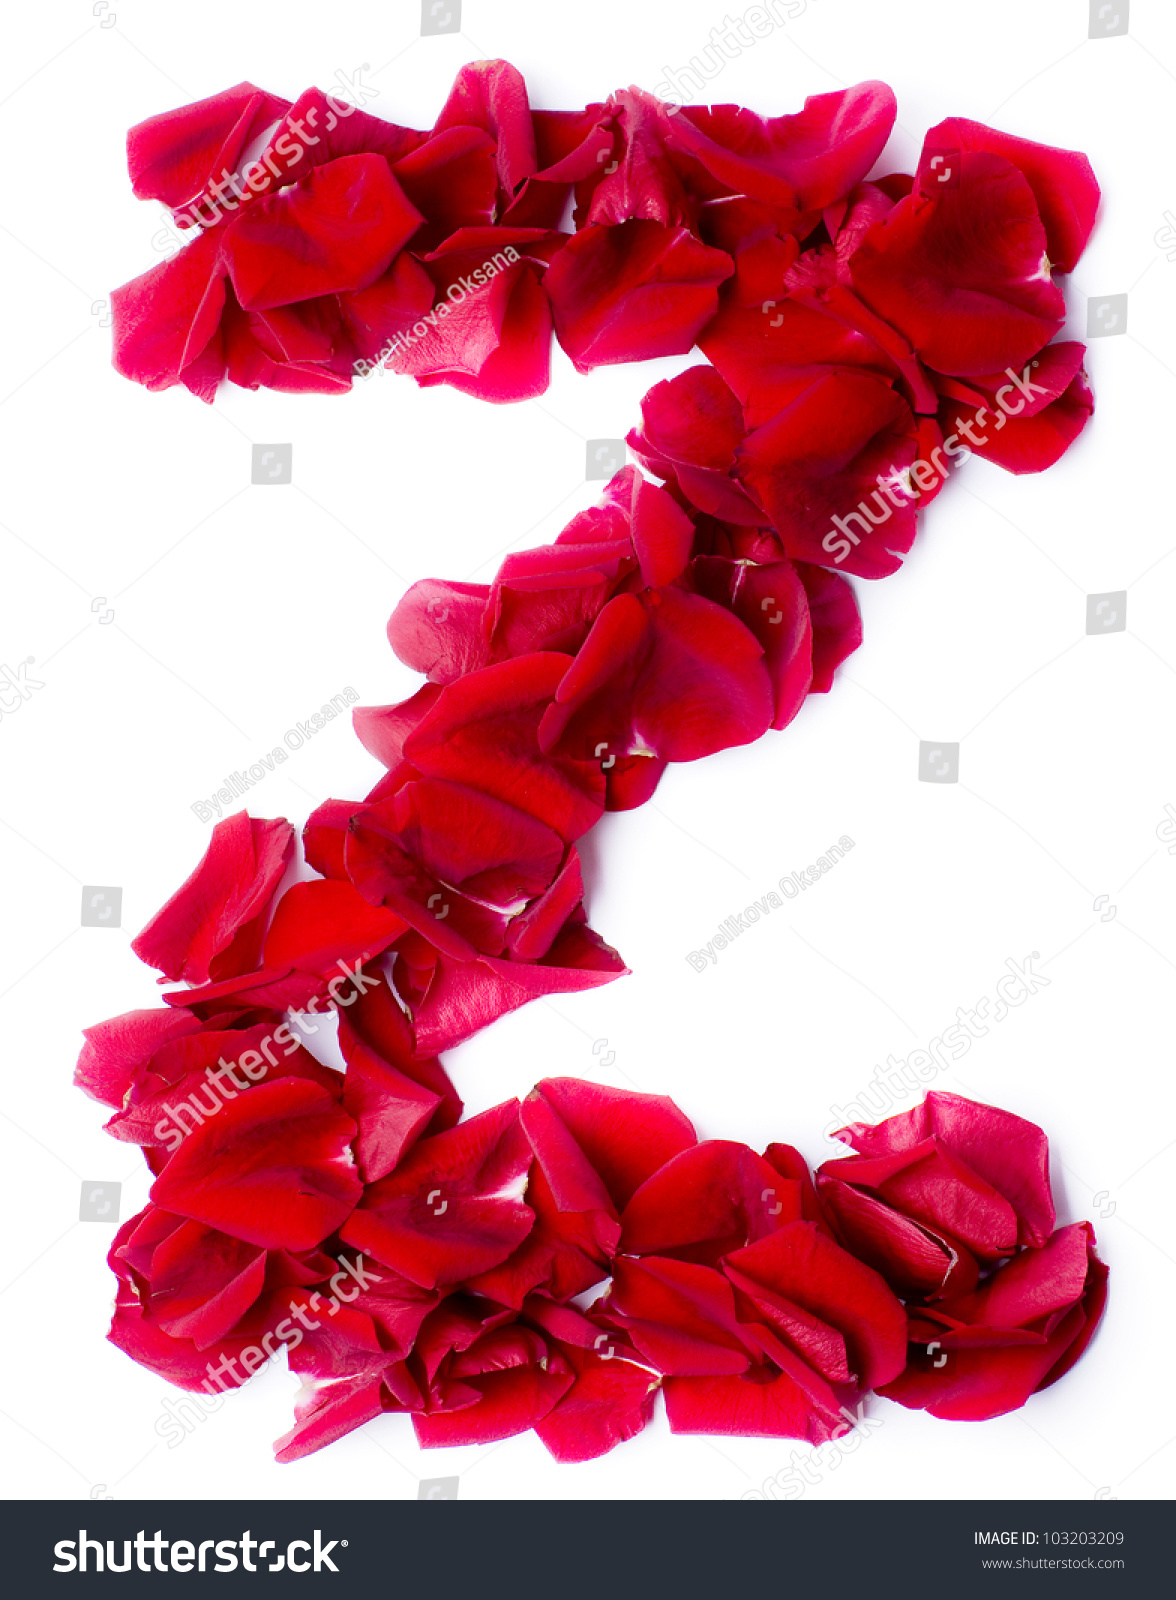 Alphabet Z Made From Red Petals Rose Stock Photo 103203209 ...